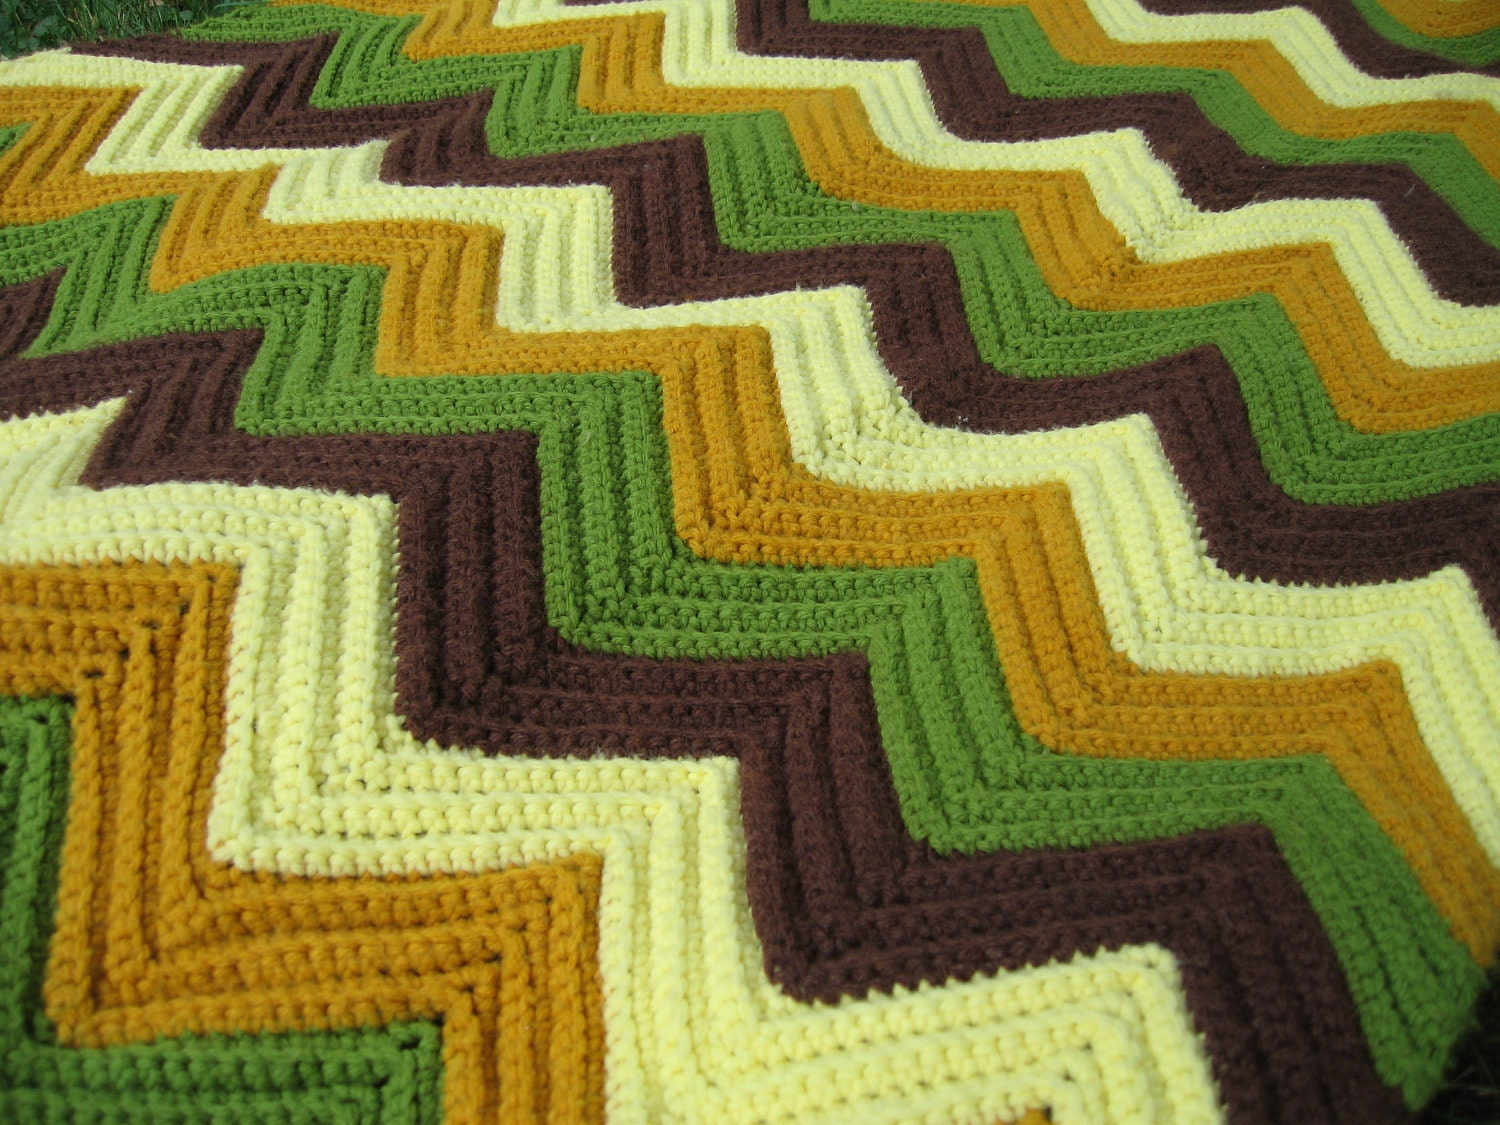 Crocheting Zig Zag Pattern : ZIG ZAG AFGHAN CROCHET PATTERN Crochet For Beginners